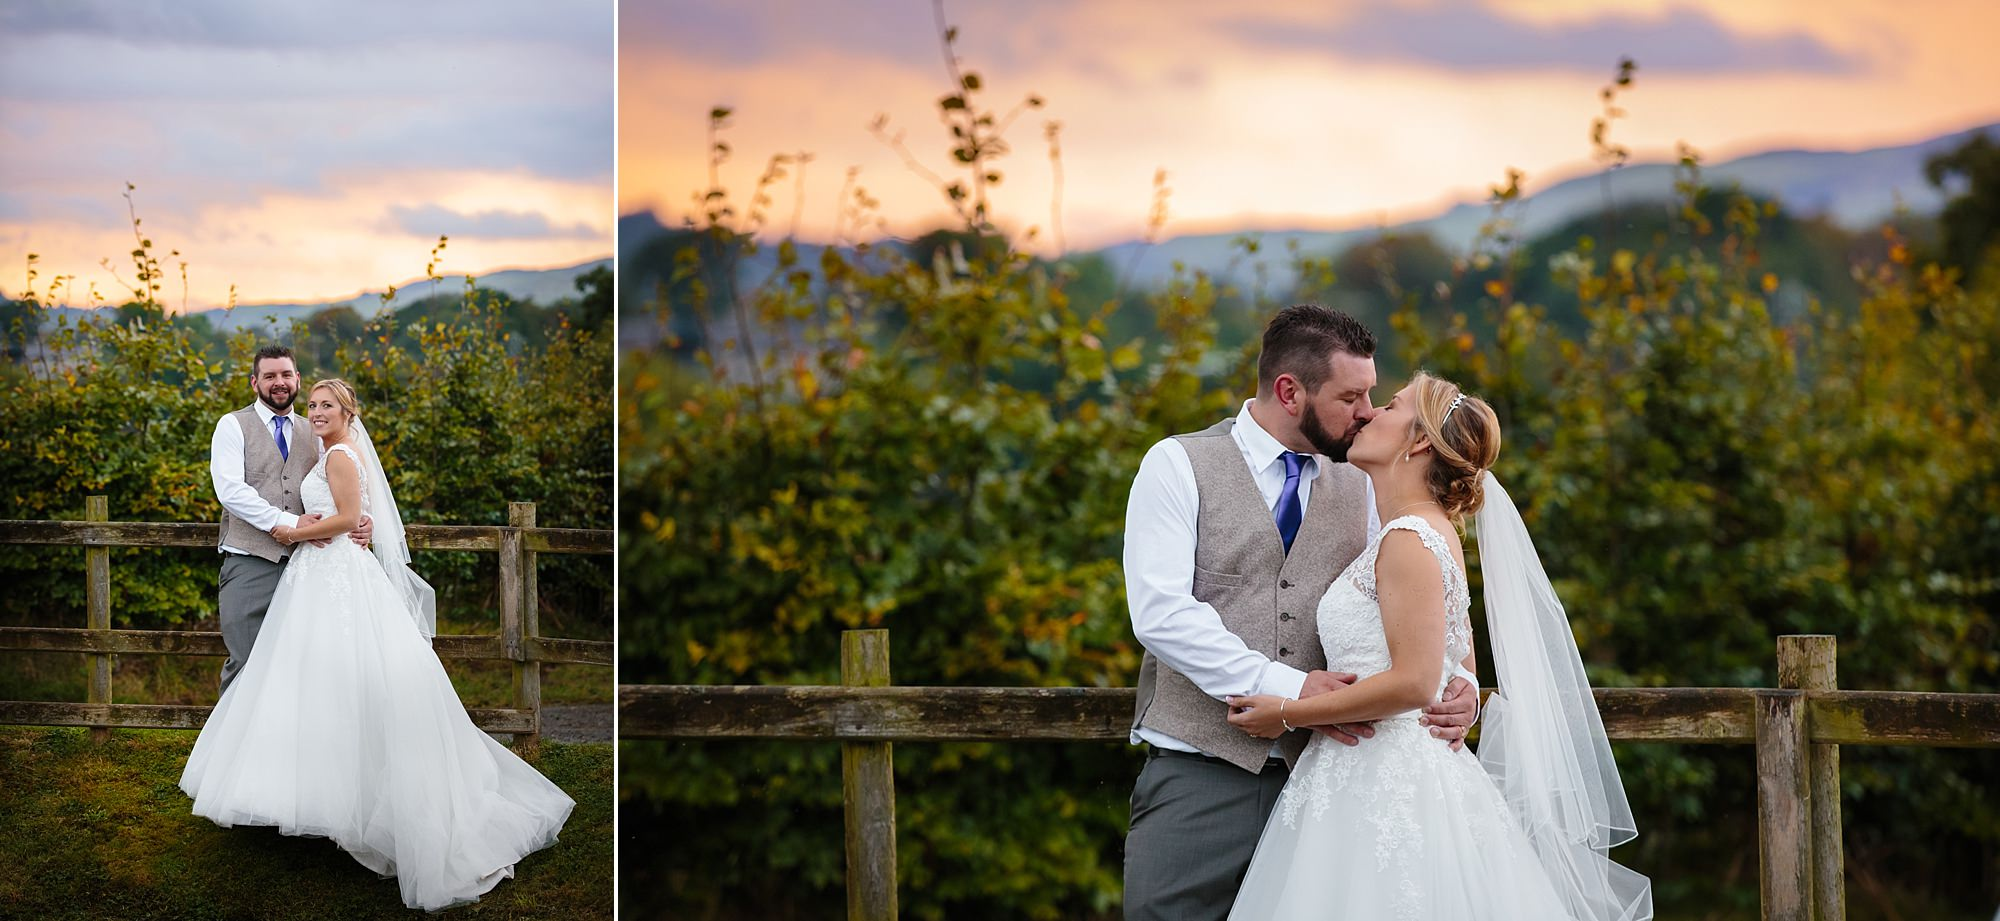 A fun wedding sunset portraits at Plas Isaf